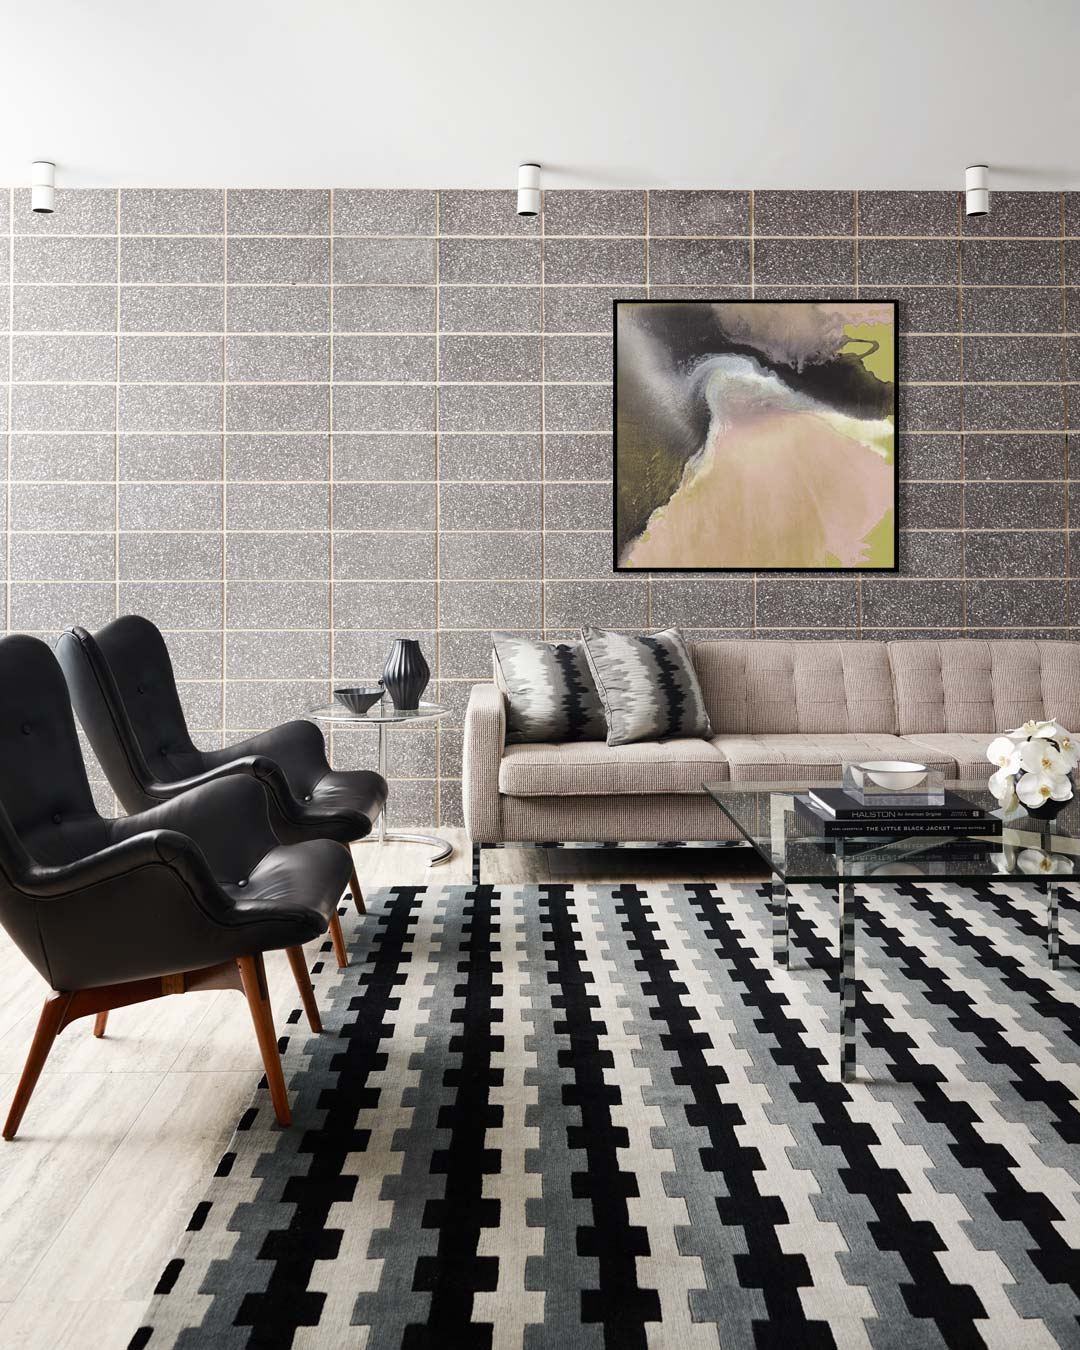 location living room shot of memphis rug by greg natale